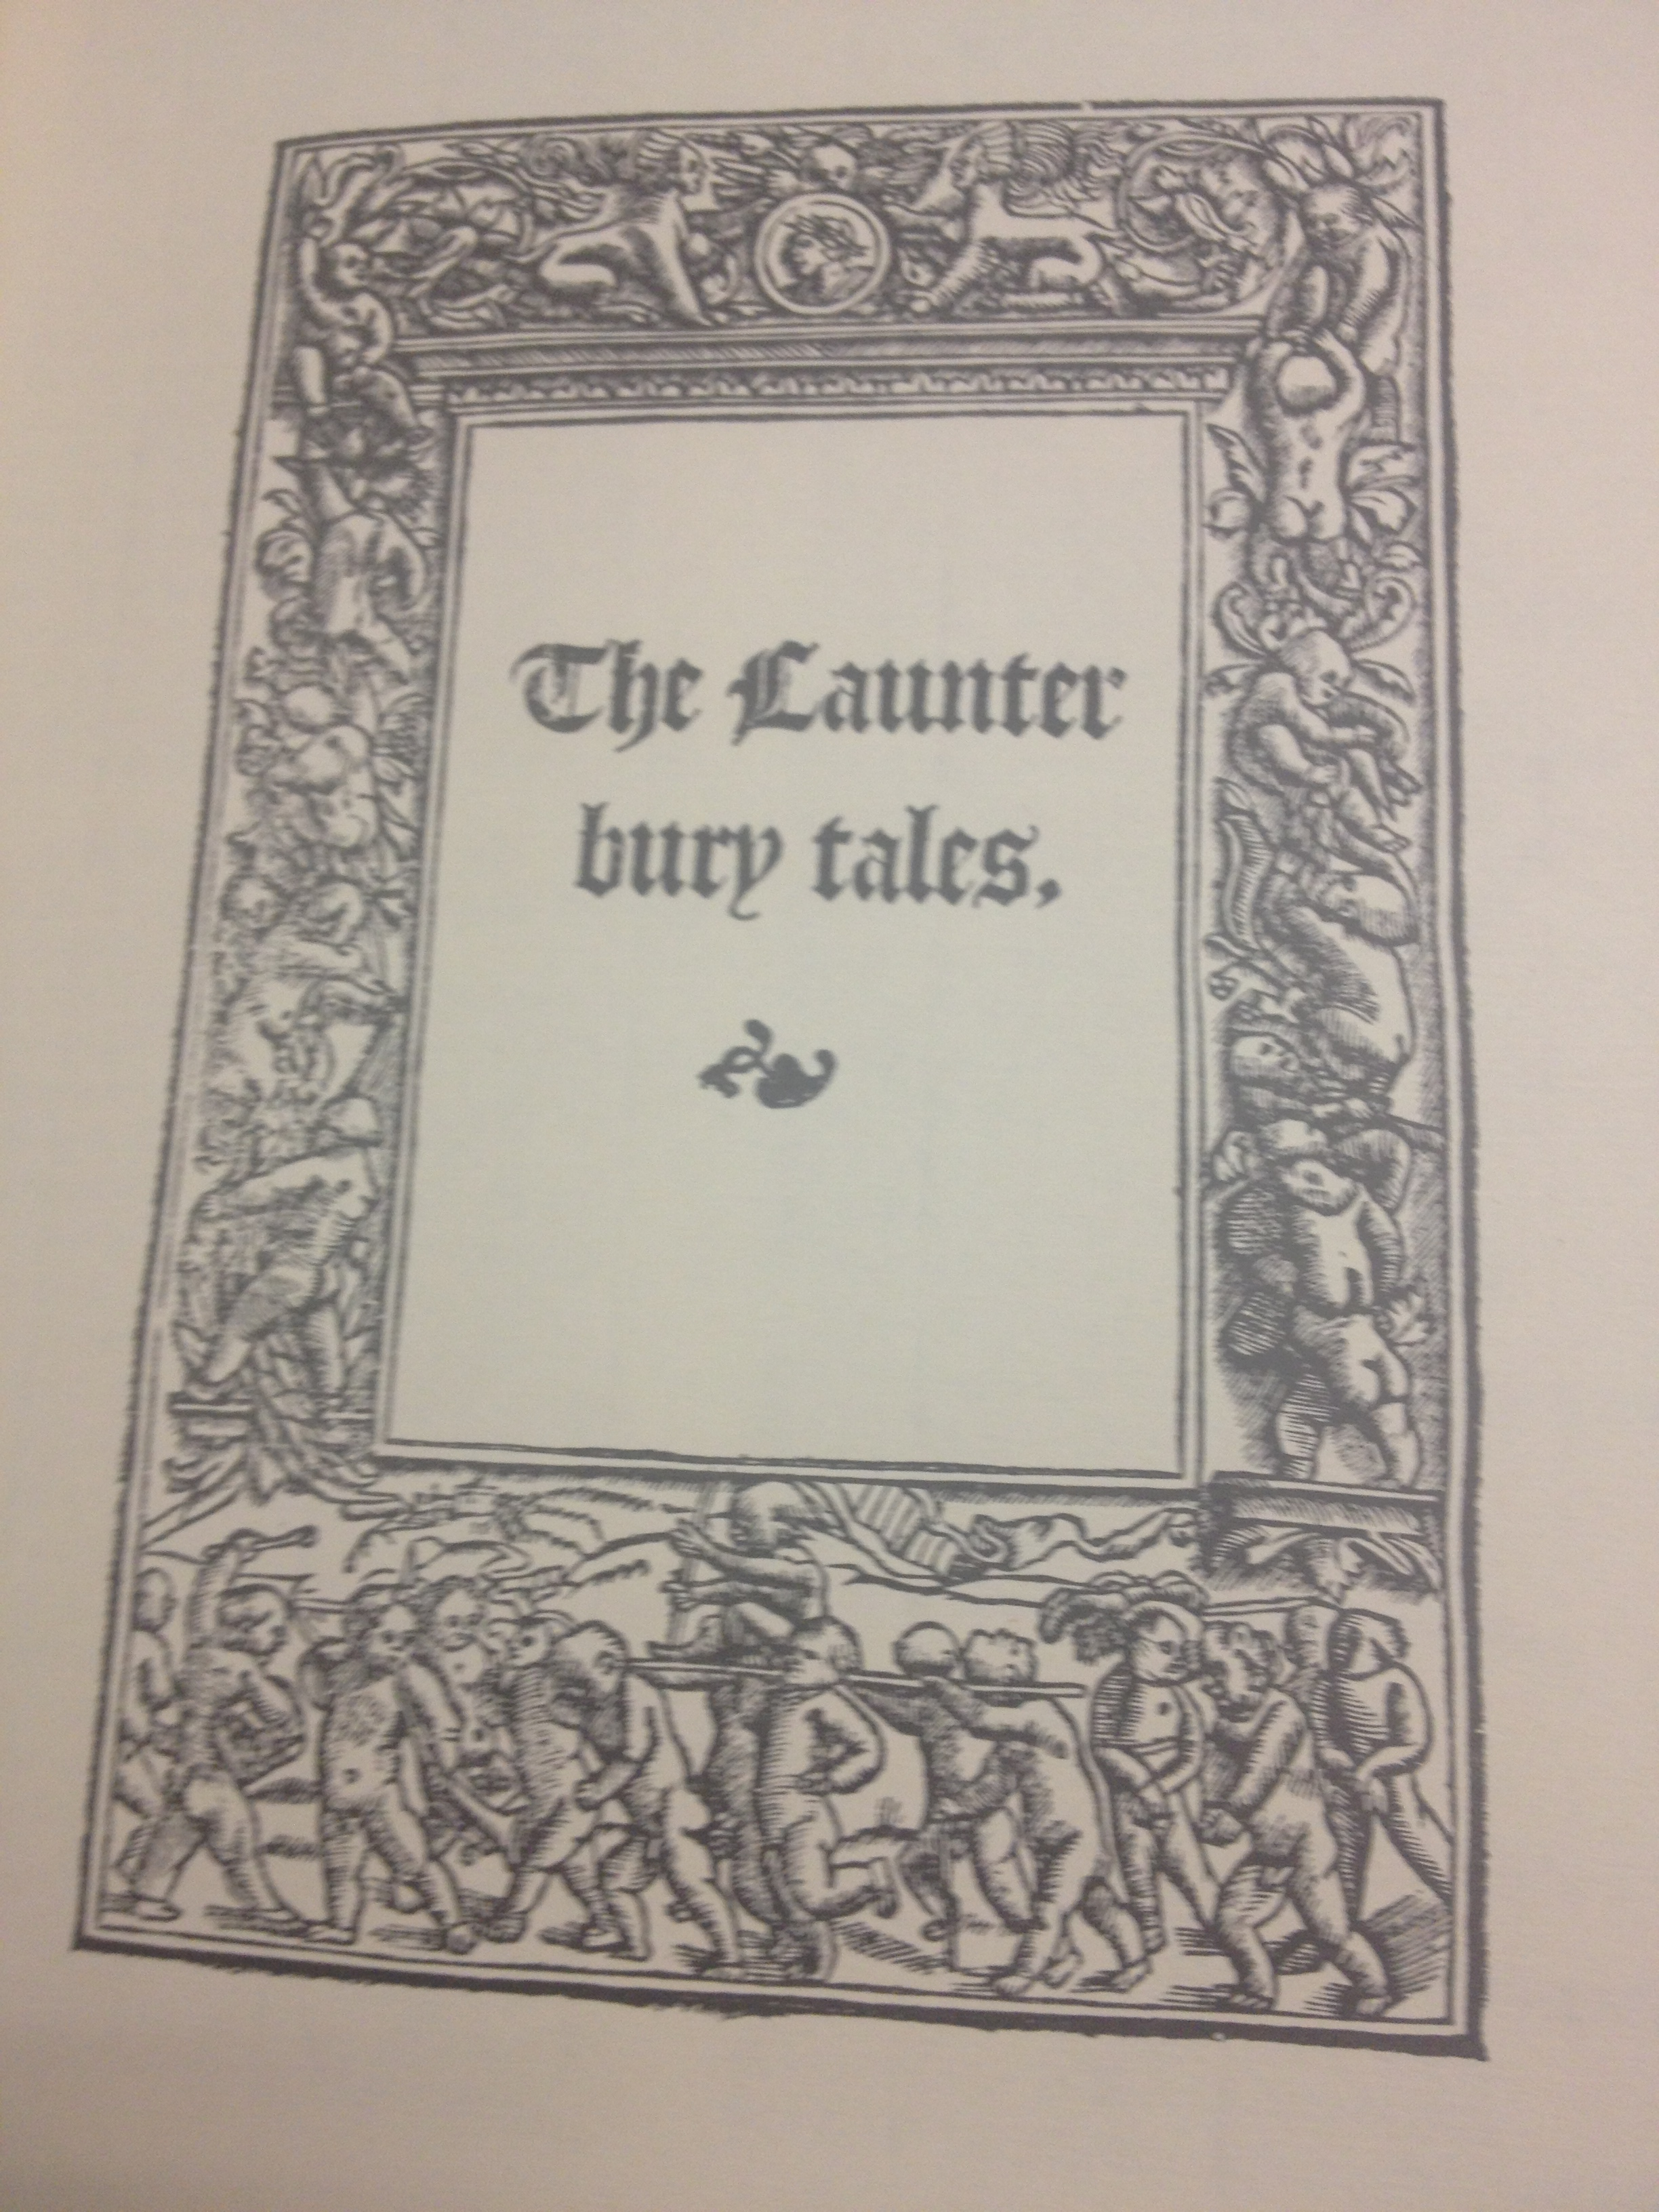 The Caunterbury Tales